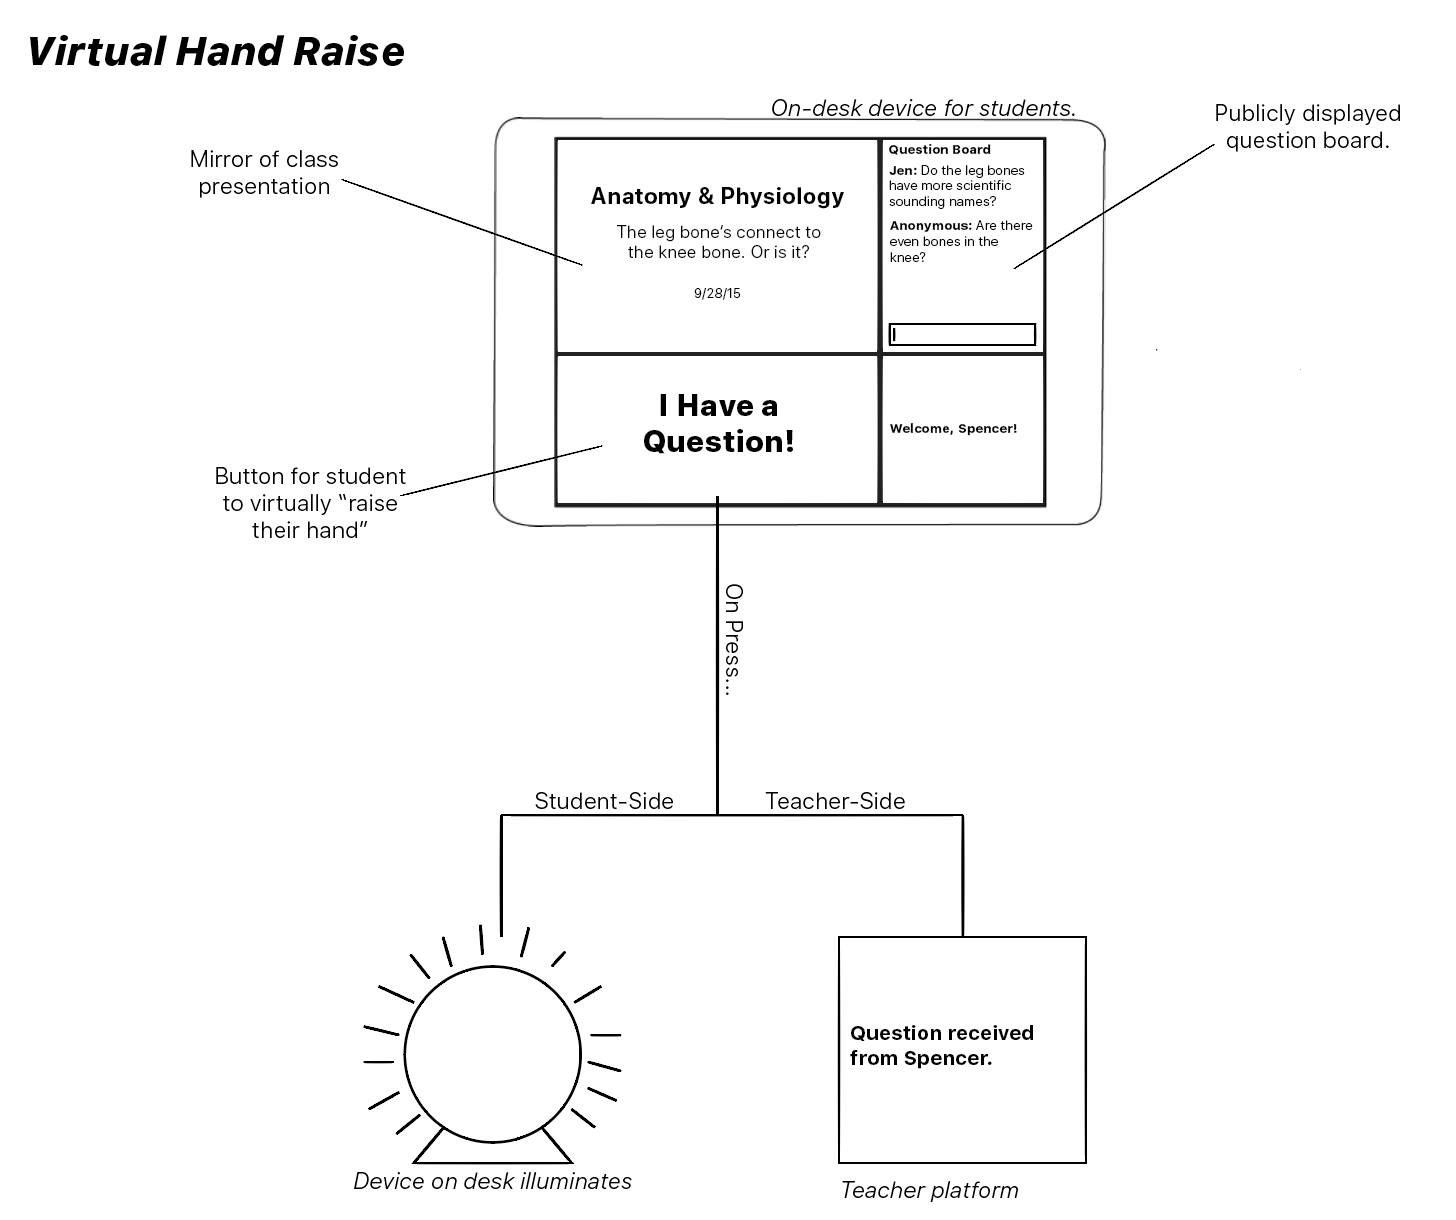 One of the initial design iterations that was later discarded in favor of the Remark system